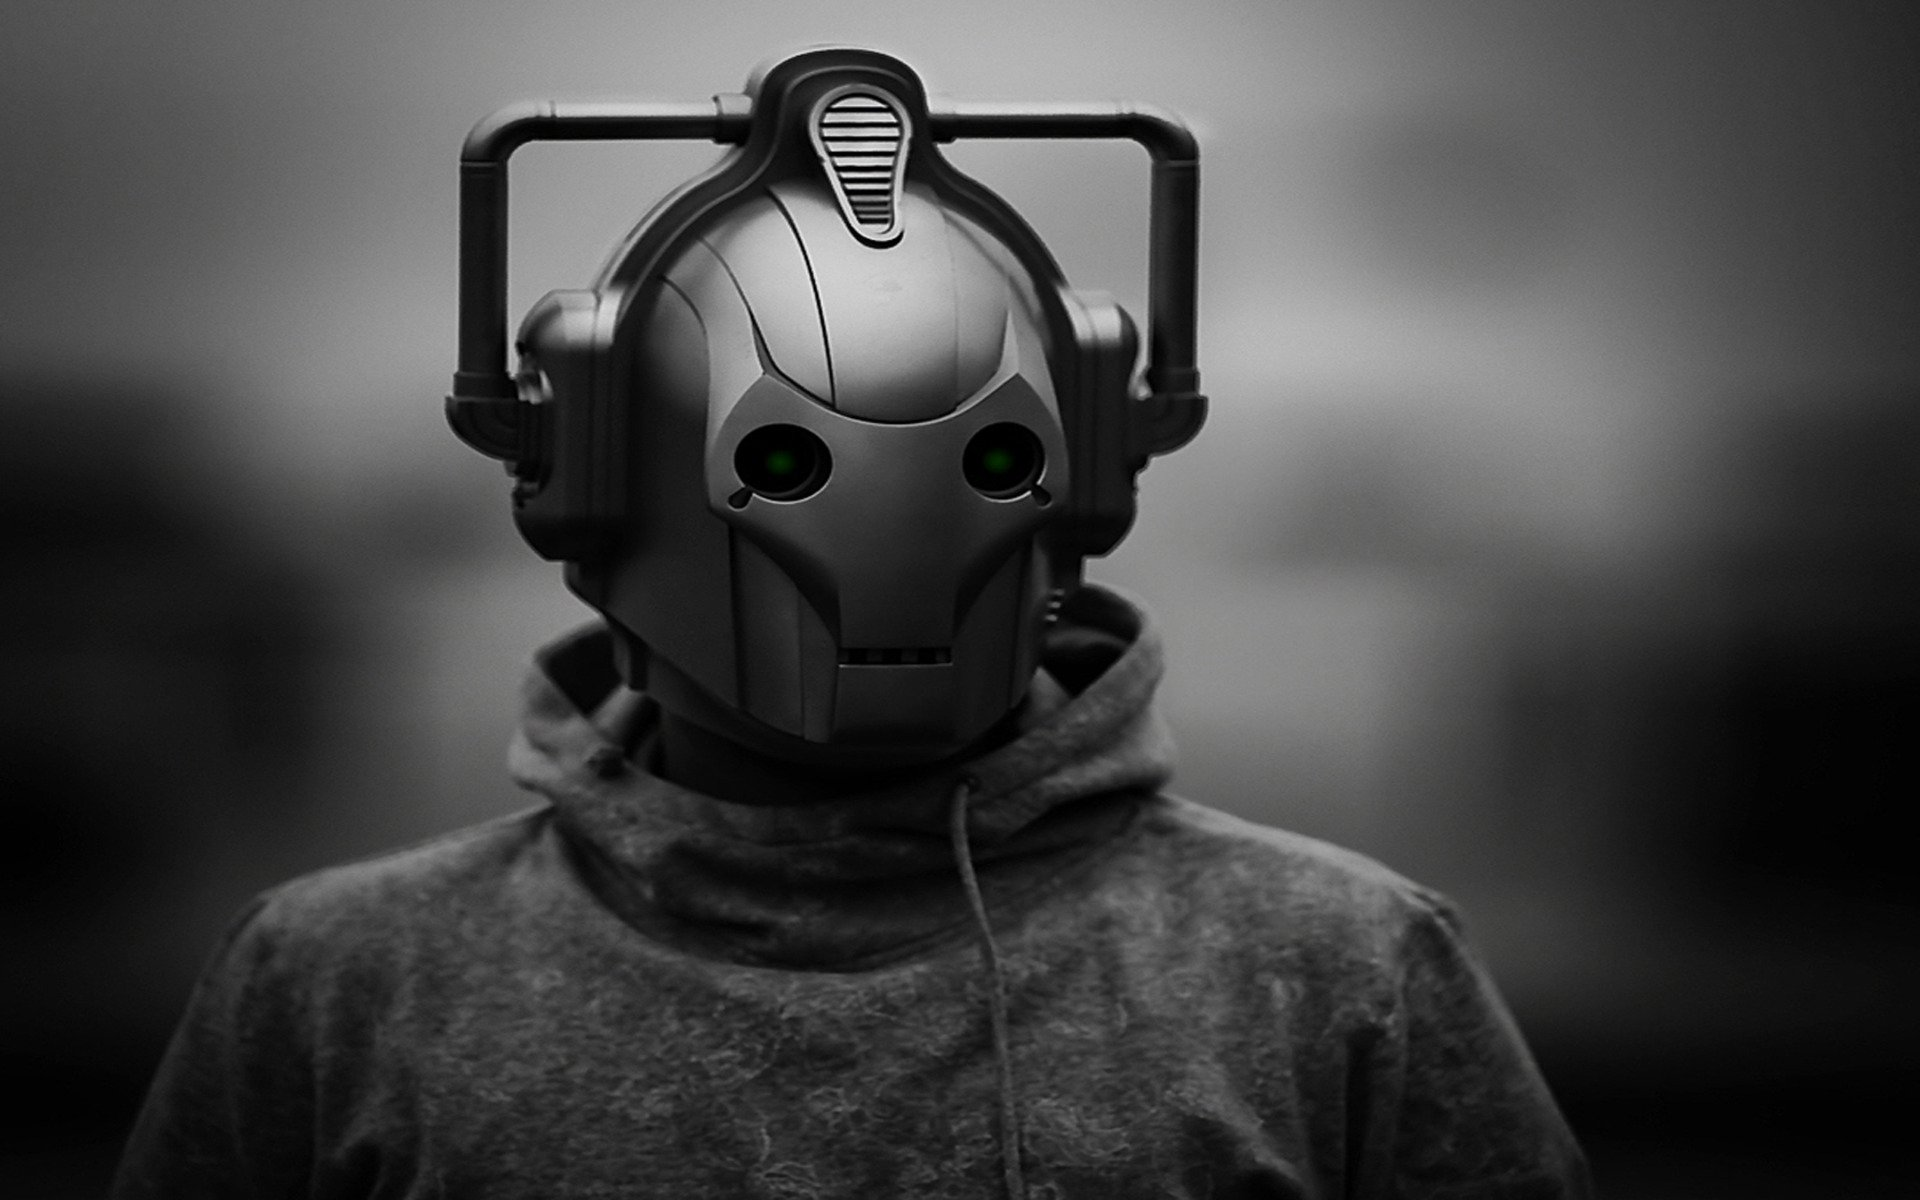 TV Show - Doctor Who  Cyborg Cyberman (Doctor Who) Wallpaper